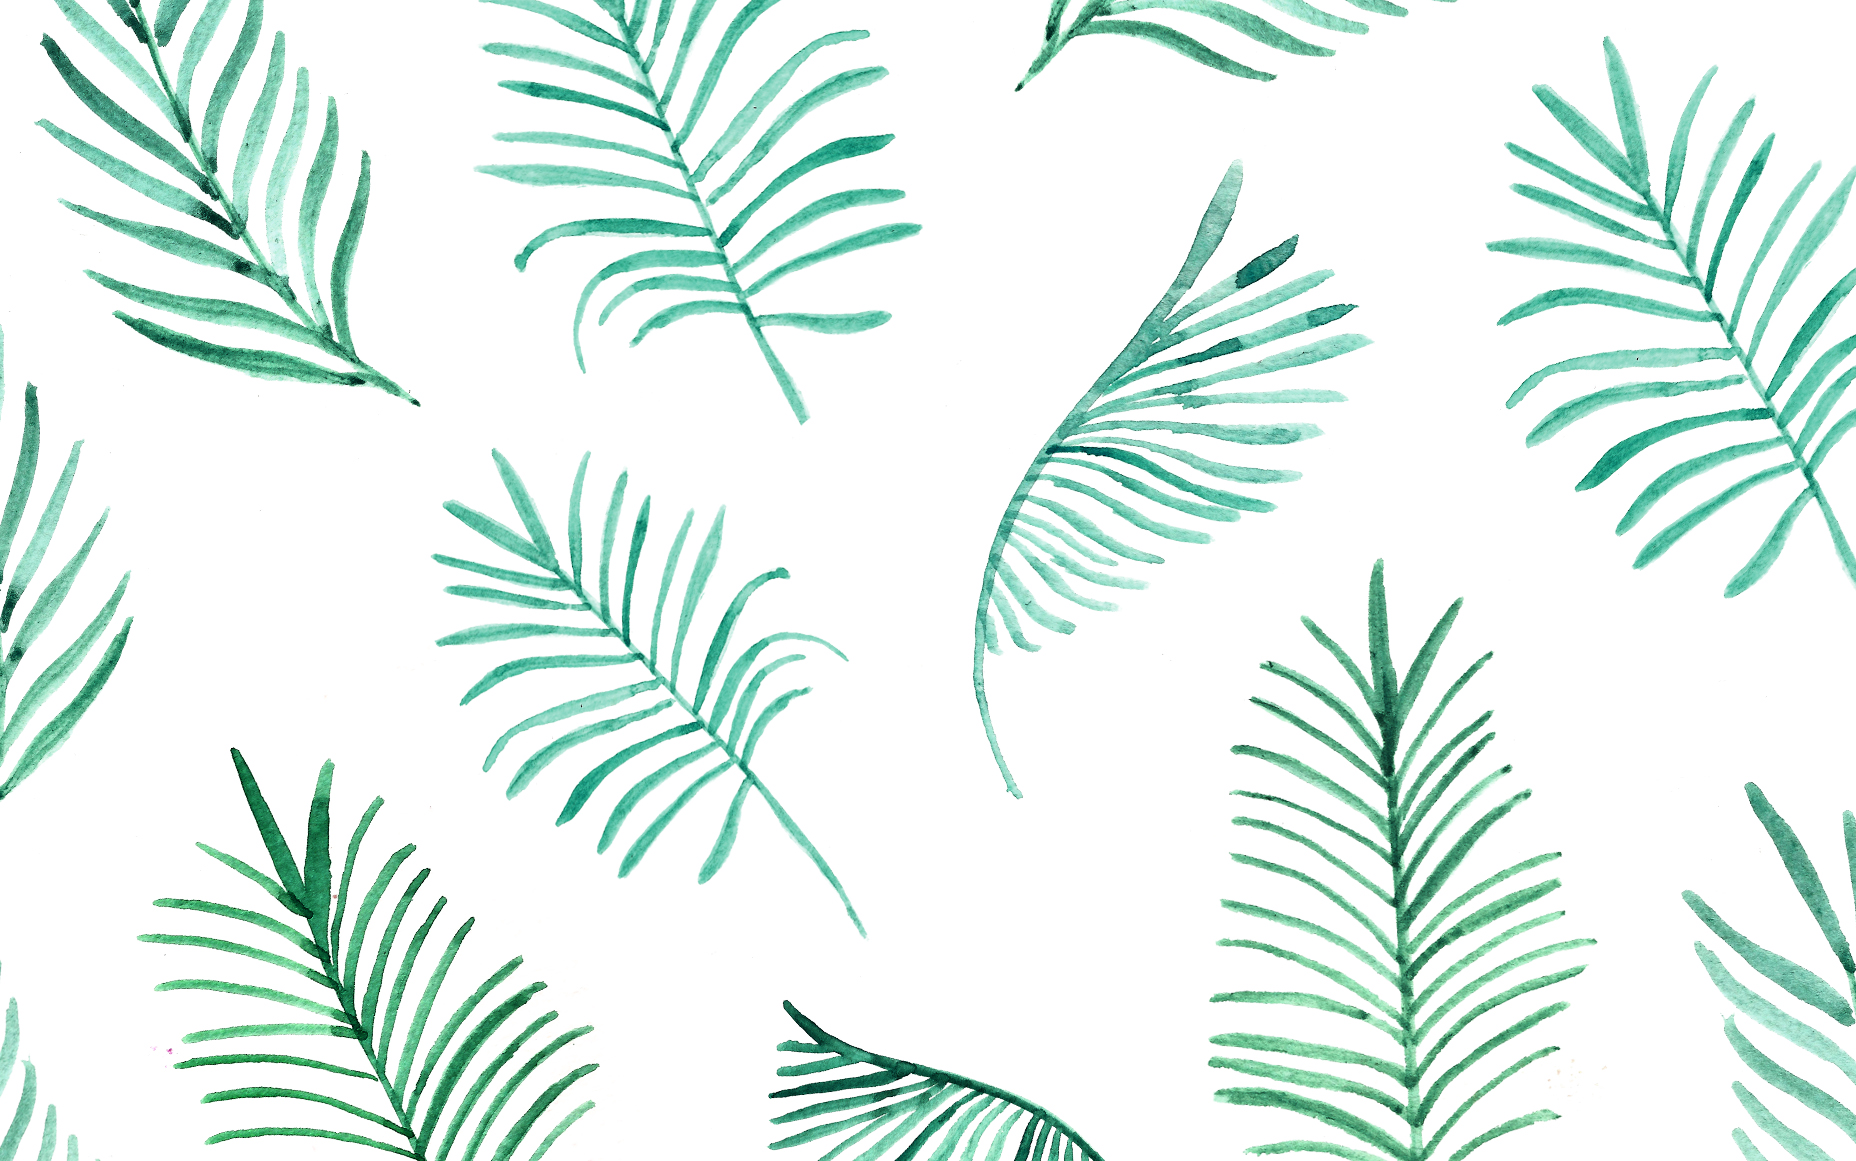 dlfxww 31 1856a—1161 wallpaper pinterest palm leaves and wallpaper